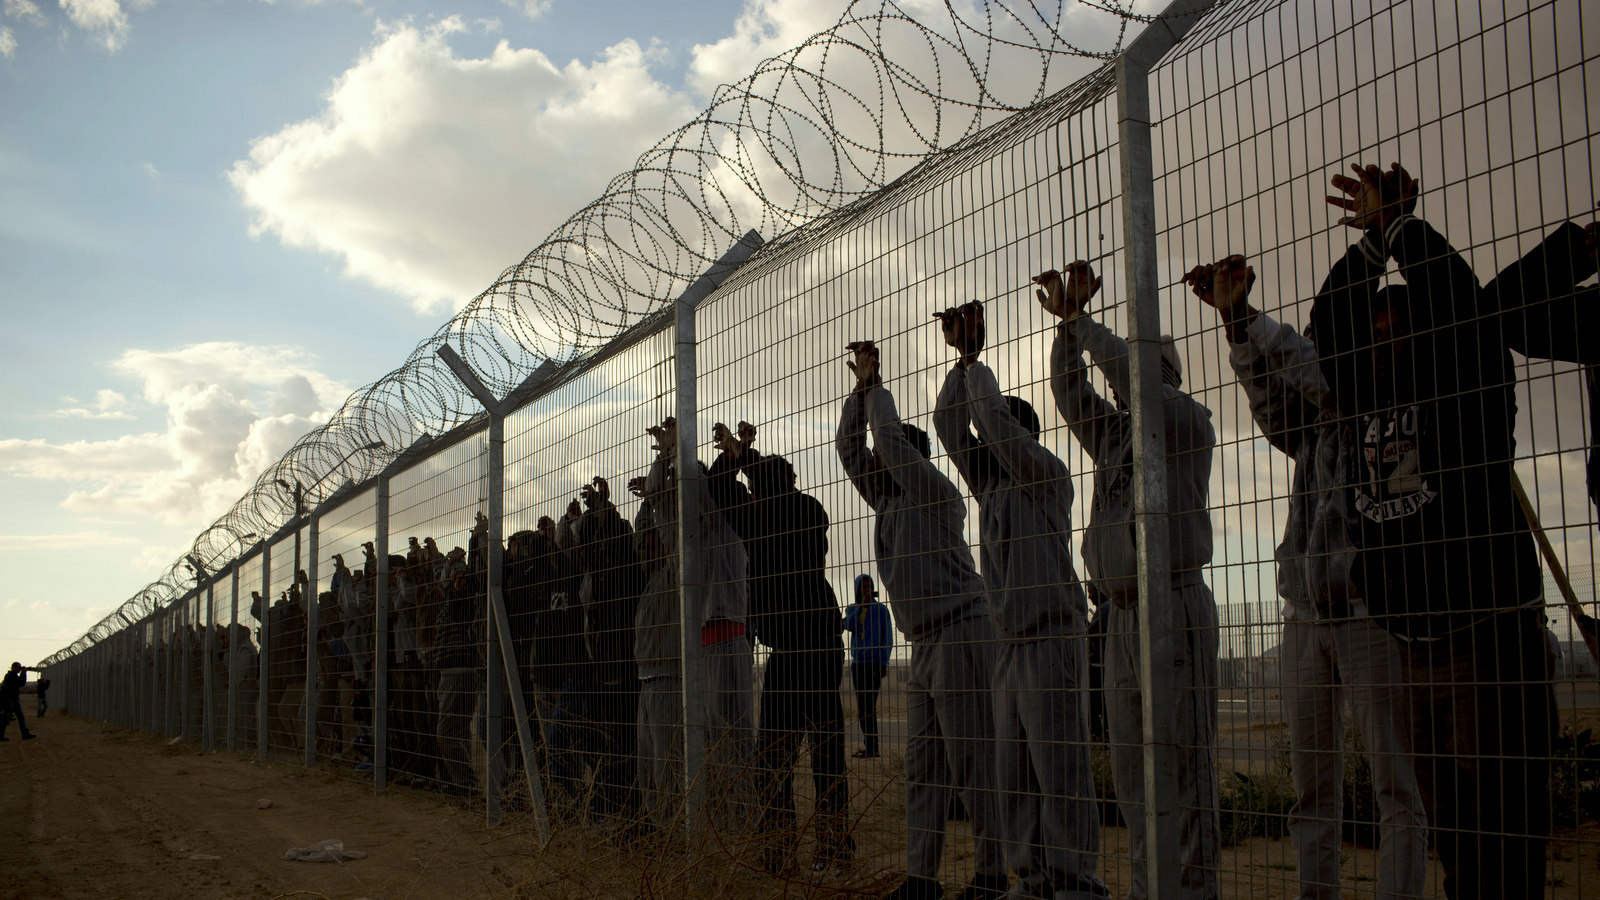 African migrants stands inside Holot detention center as others protest outside against the detention center near Ktsiot the Negev Desert in southern Israel, Monday, Feb. 17, 2014. (AP Photo/Oded Balilty)